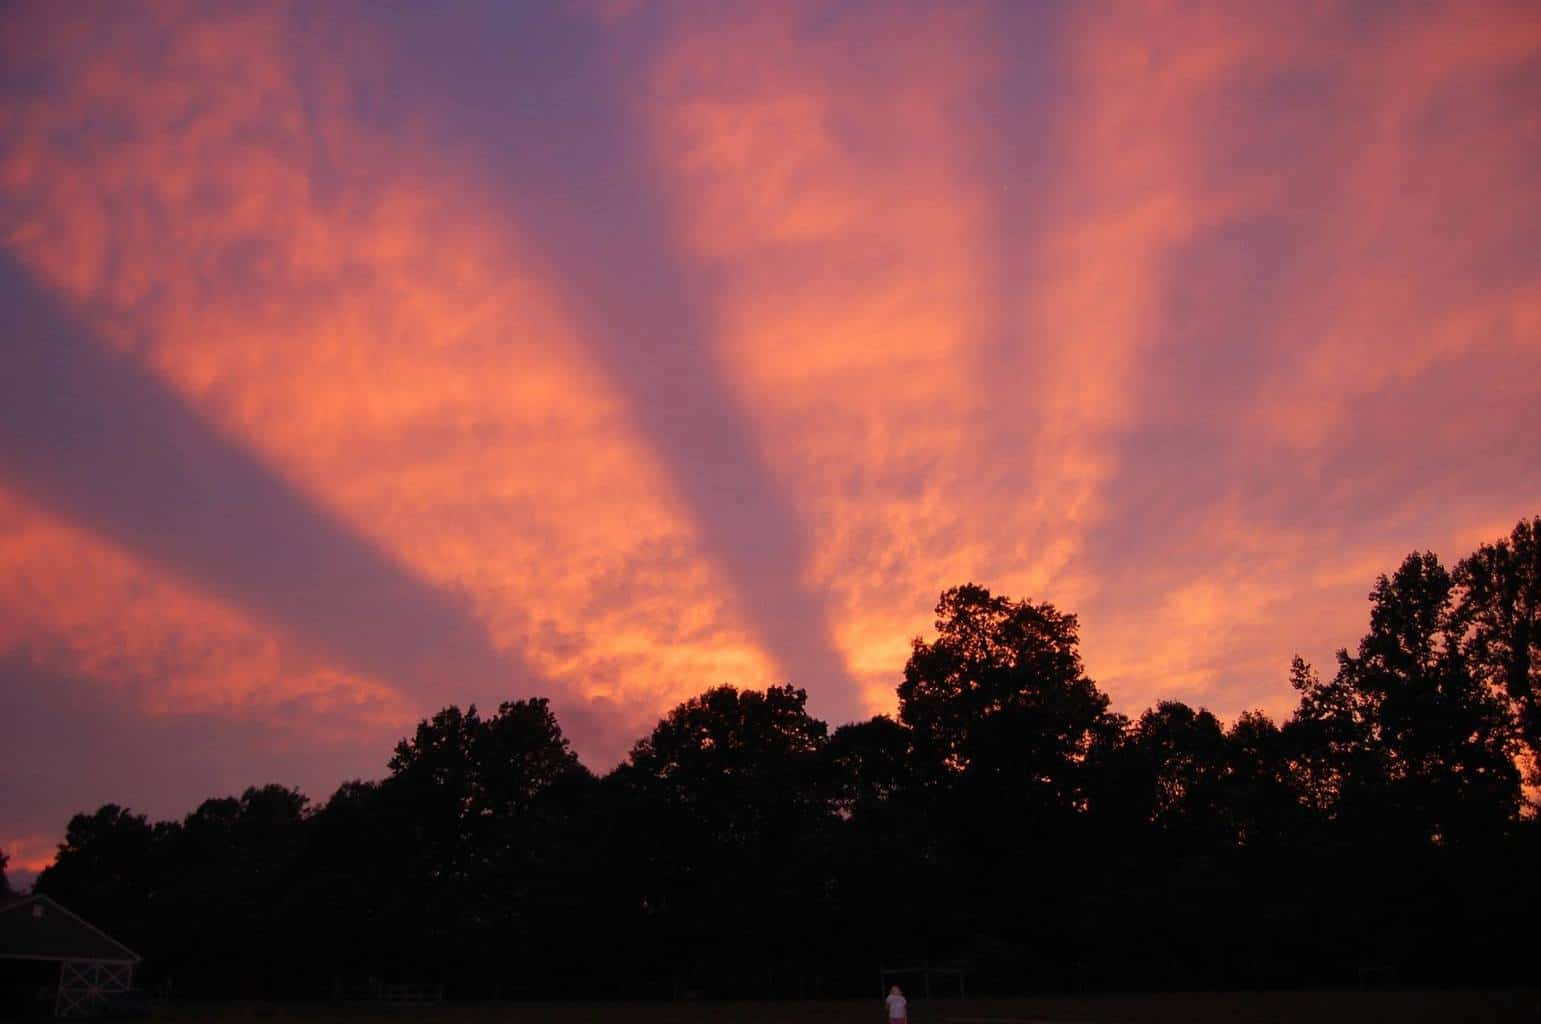 """Resurrection Celebration Because Jesus Lives!"" For several years I have wondered WHAT??!! created the stunning striped effect in the sky on the evening of 8/7/12. These stripes originated in the west, stretched overhead, and reached all the way into the east. To the best of my understanding smile emoticon, I learned they are called crepuscular rays (shadows actually) when the viewer is facing the sun. Had I faced east and taken a photo of these rays also stretching into that horizon, they would then be called anticrepuscular rays. In my photo, these rays of shadow are created either by: 1. the sun behind clouds obstructing the sun's light rays just at or below the horizon, OR MAY BE 2. the sun behind obstructing mountains in the distance behind my house? I'll see if I can post the computerized mountainscape..."